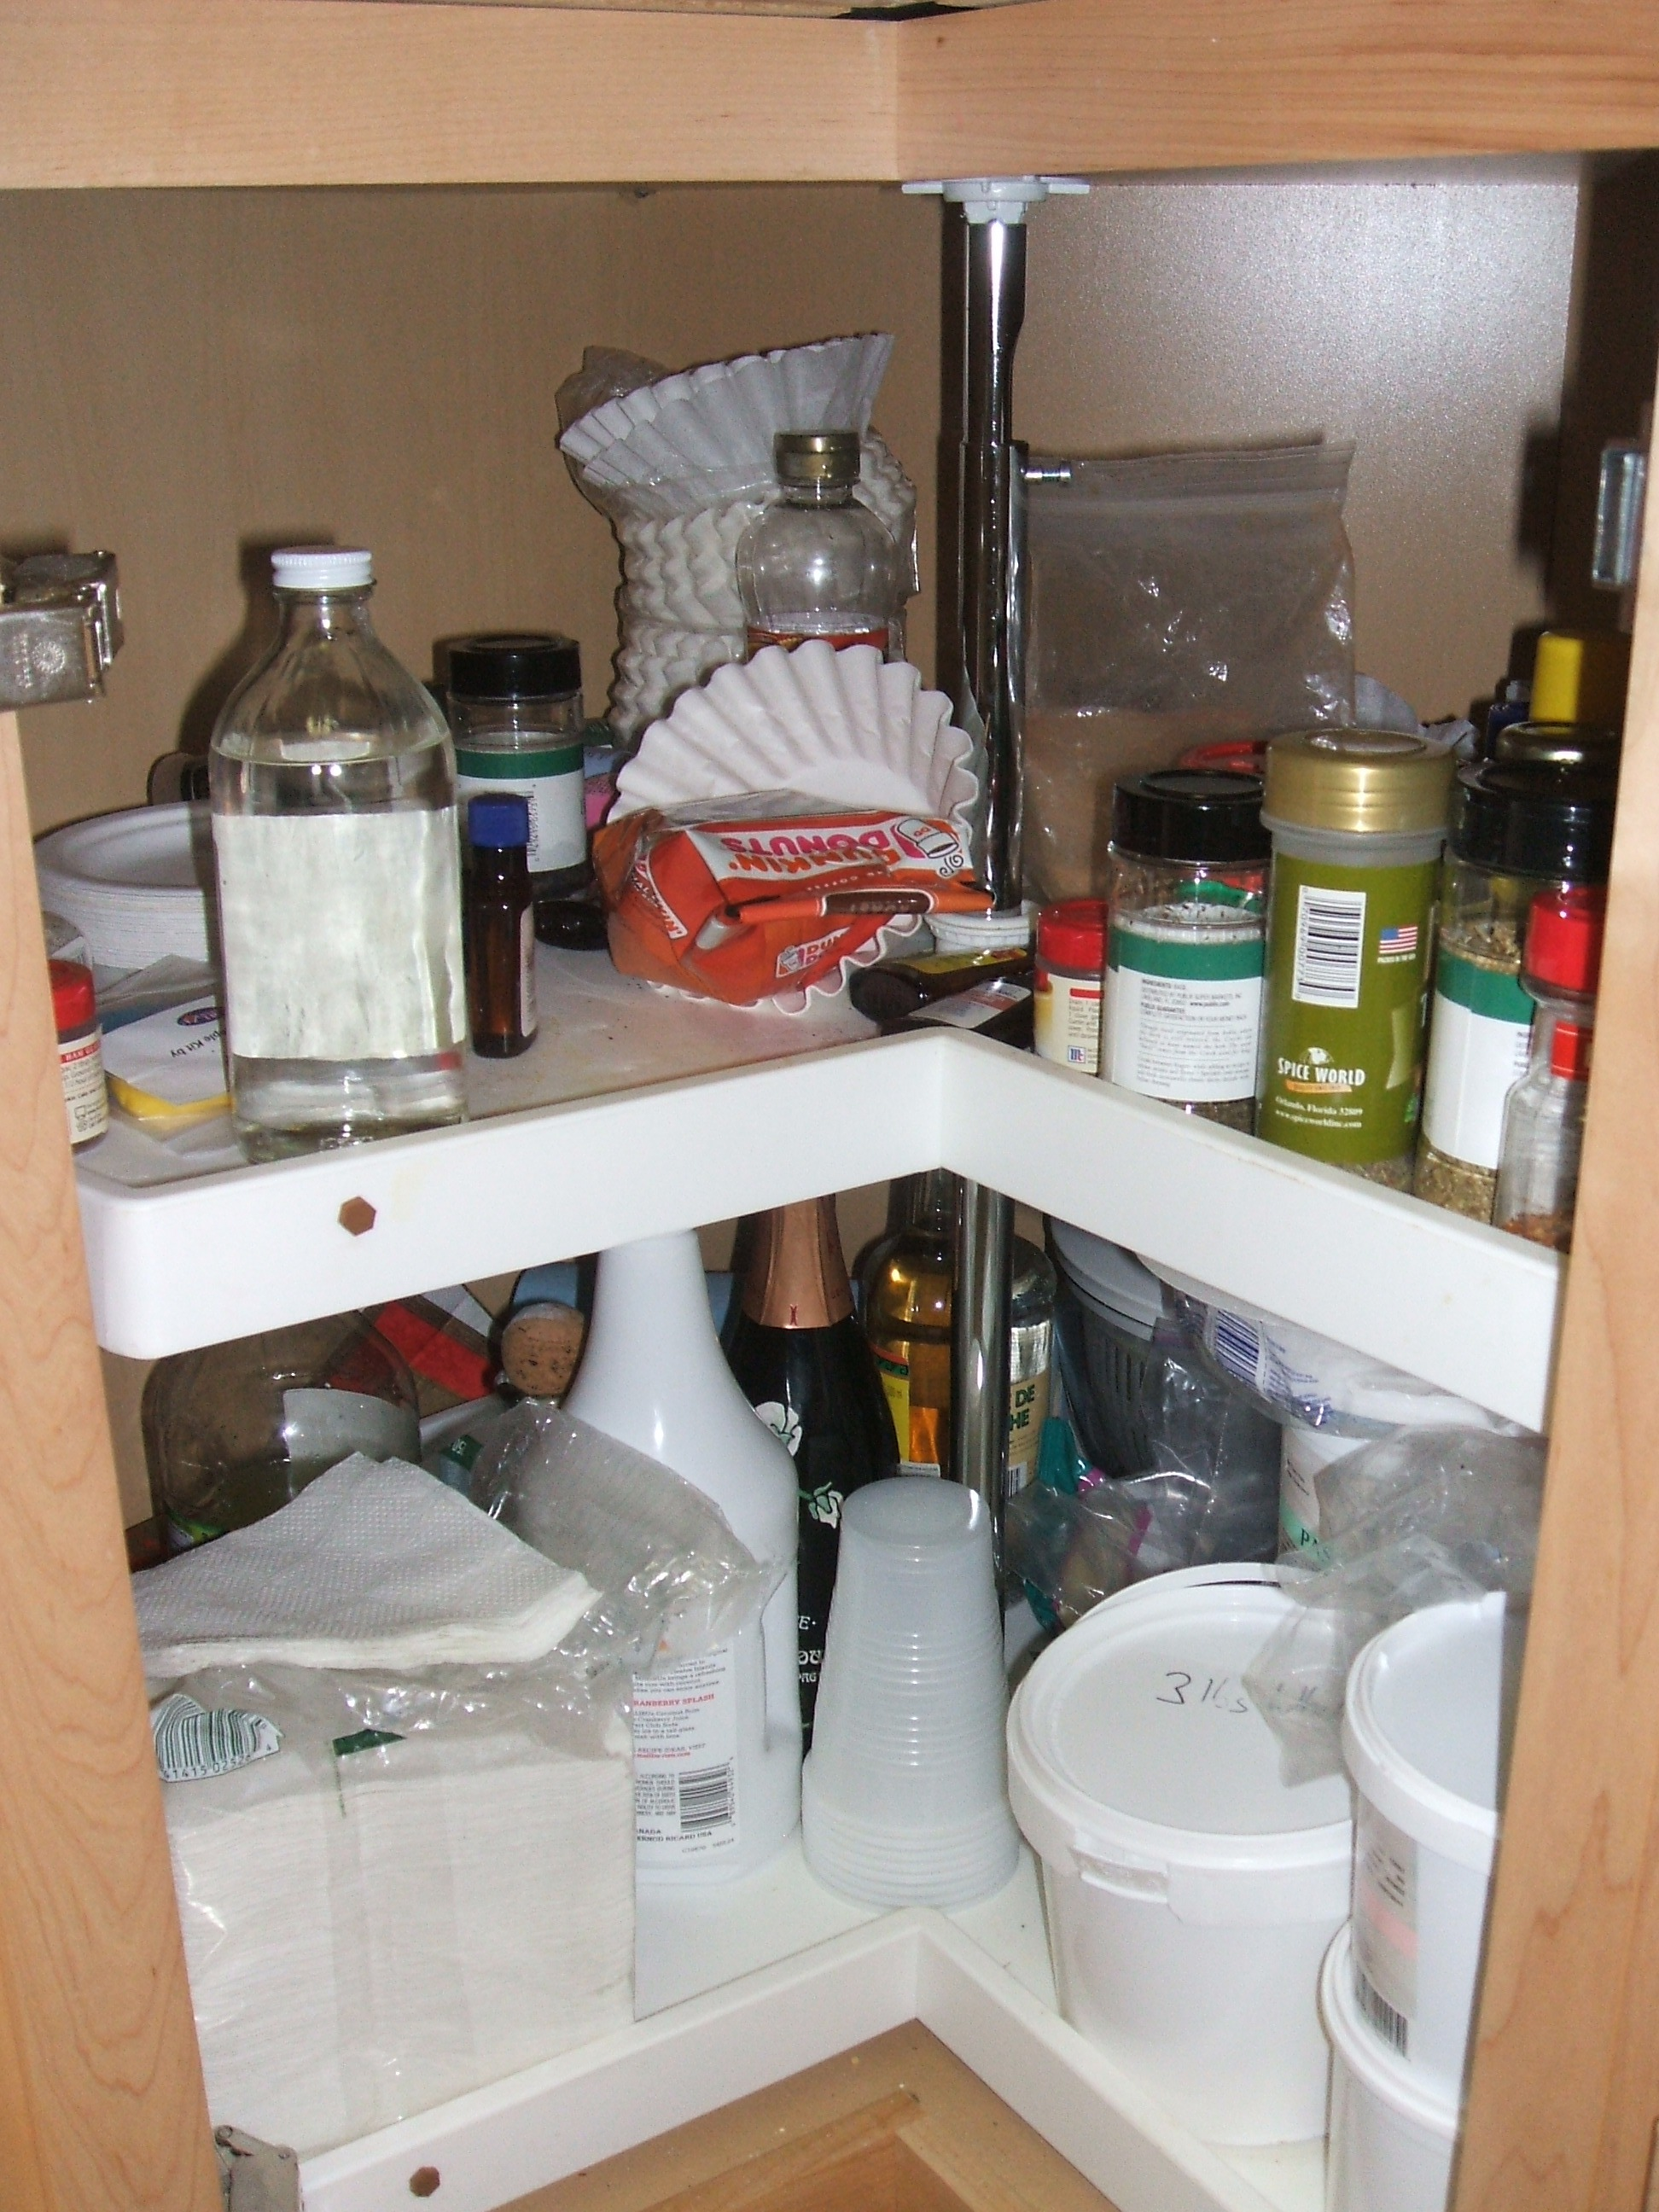 Lazy Susan Before - Yuck!